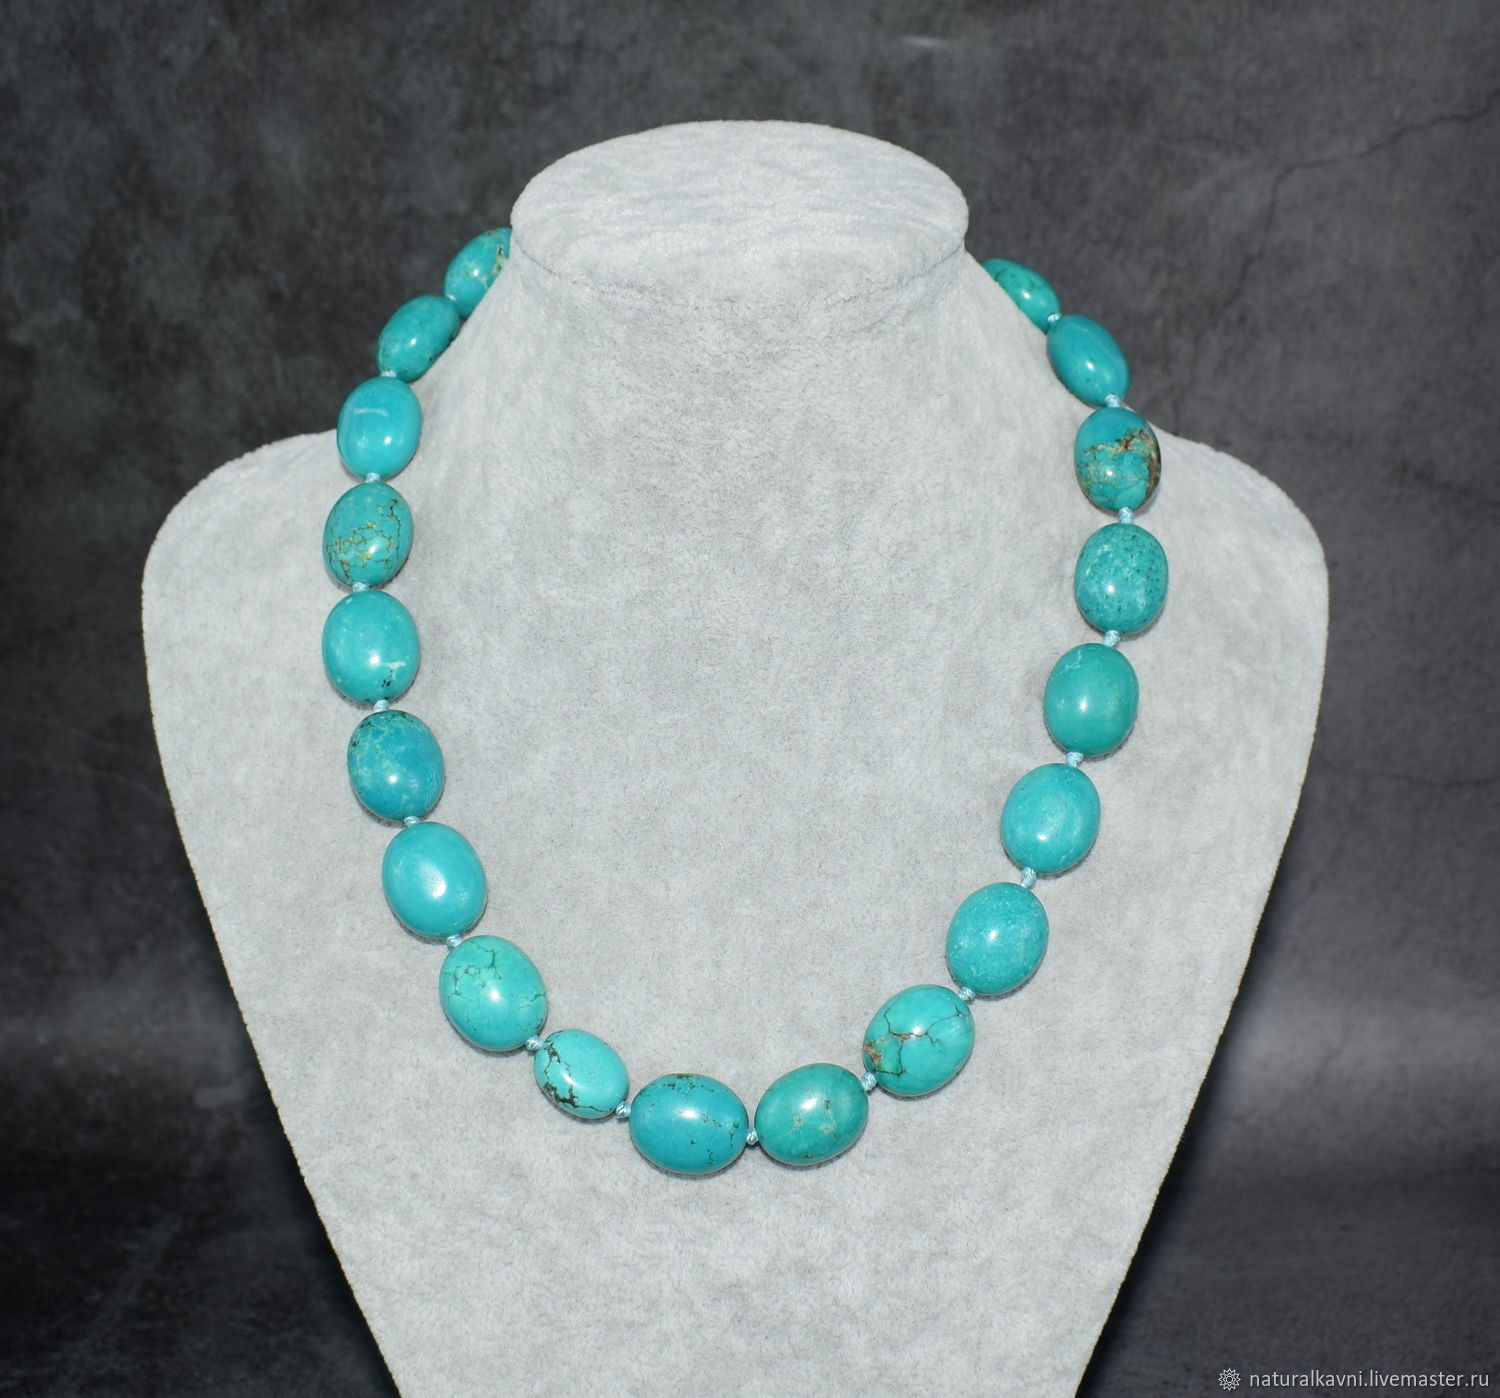 Natural Arizona Turquoise Beads, Beads2, Moscow,  Фото №1